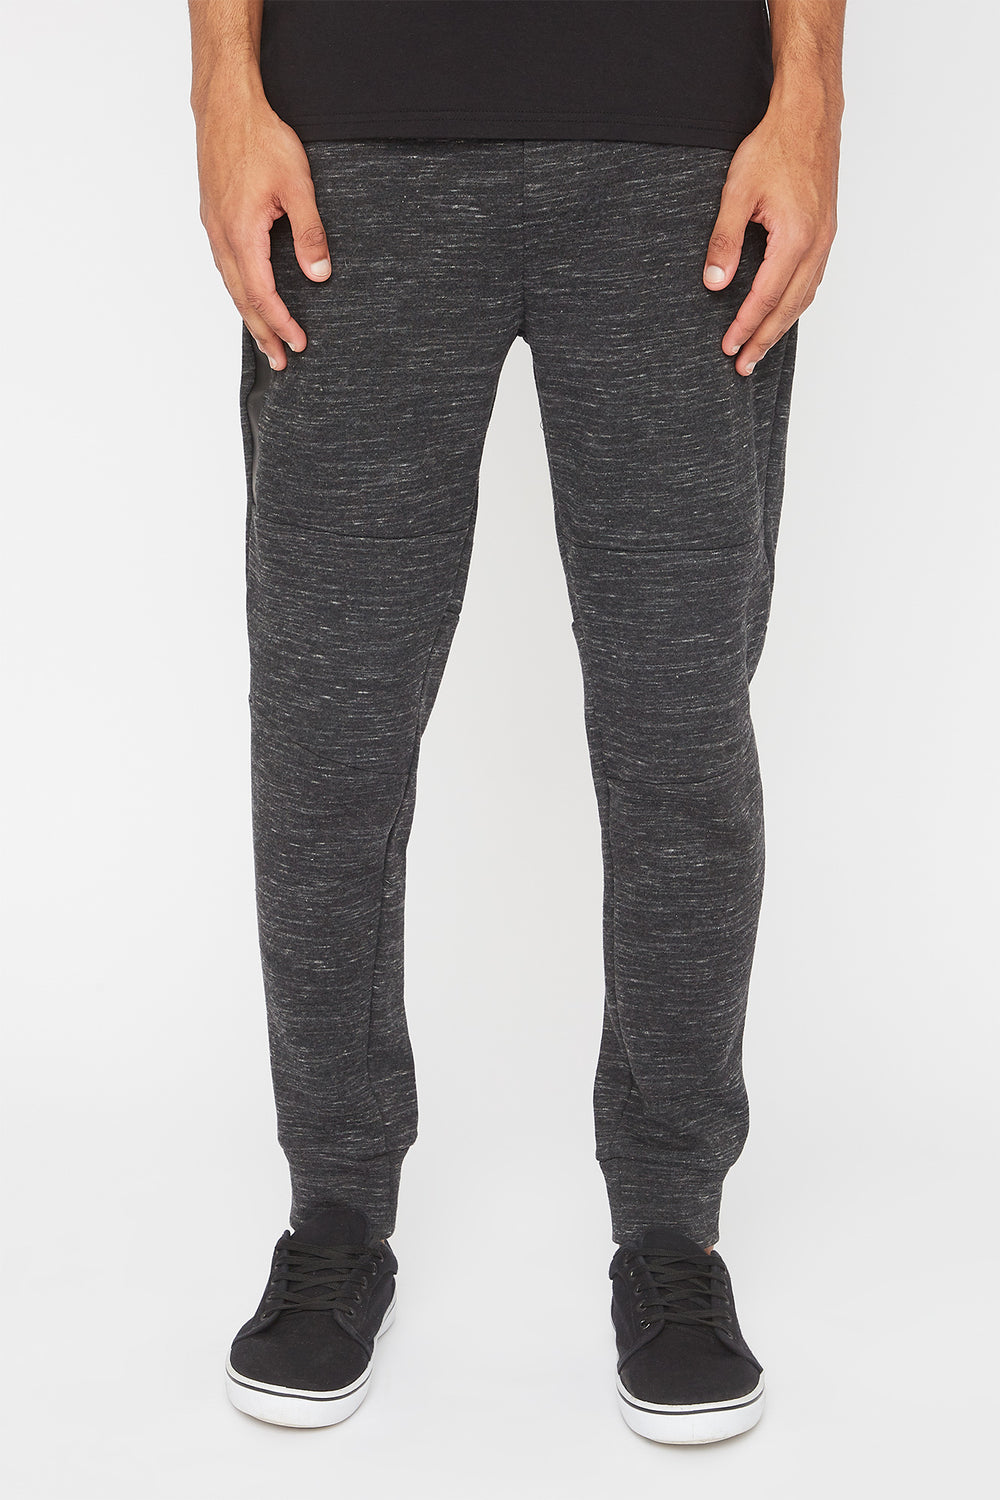 West49 Mens Zip Jogger Charcoal